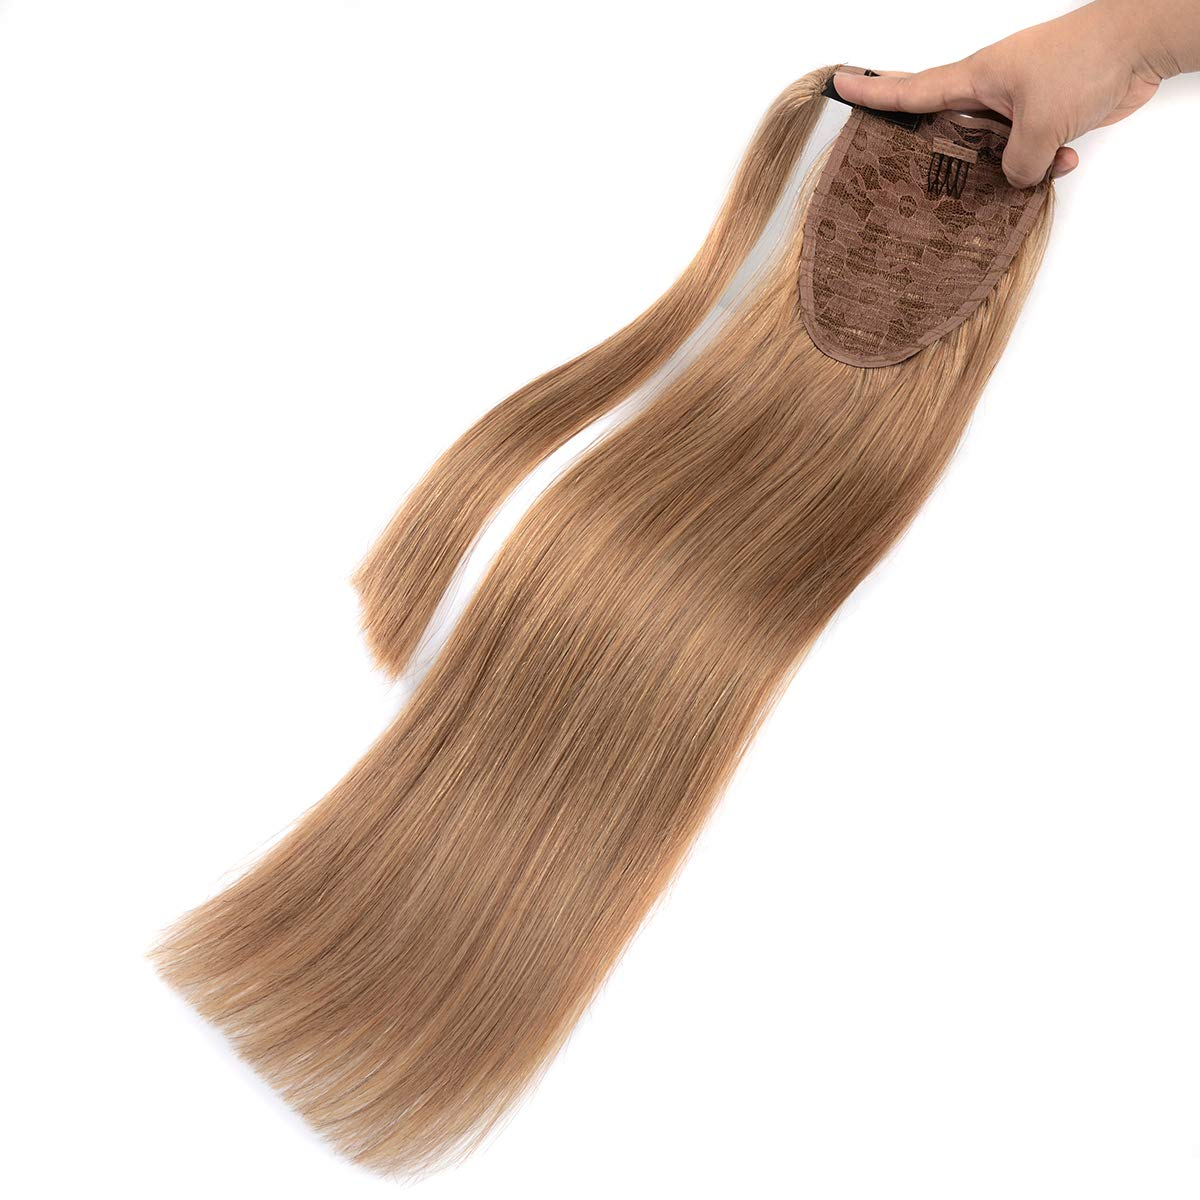 18 Inches Straight Ponytail Human Hair Extensions Natural Black Hairpiece Wrap Around Pony Tail Real Clip in Hair Extensions for Woman MRS HAIR